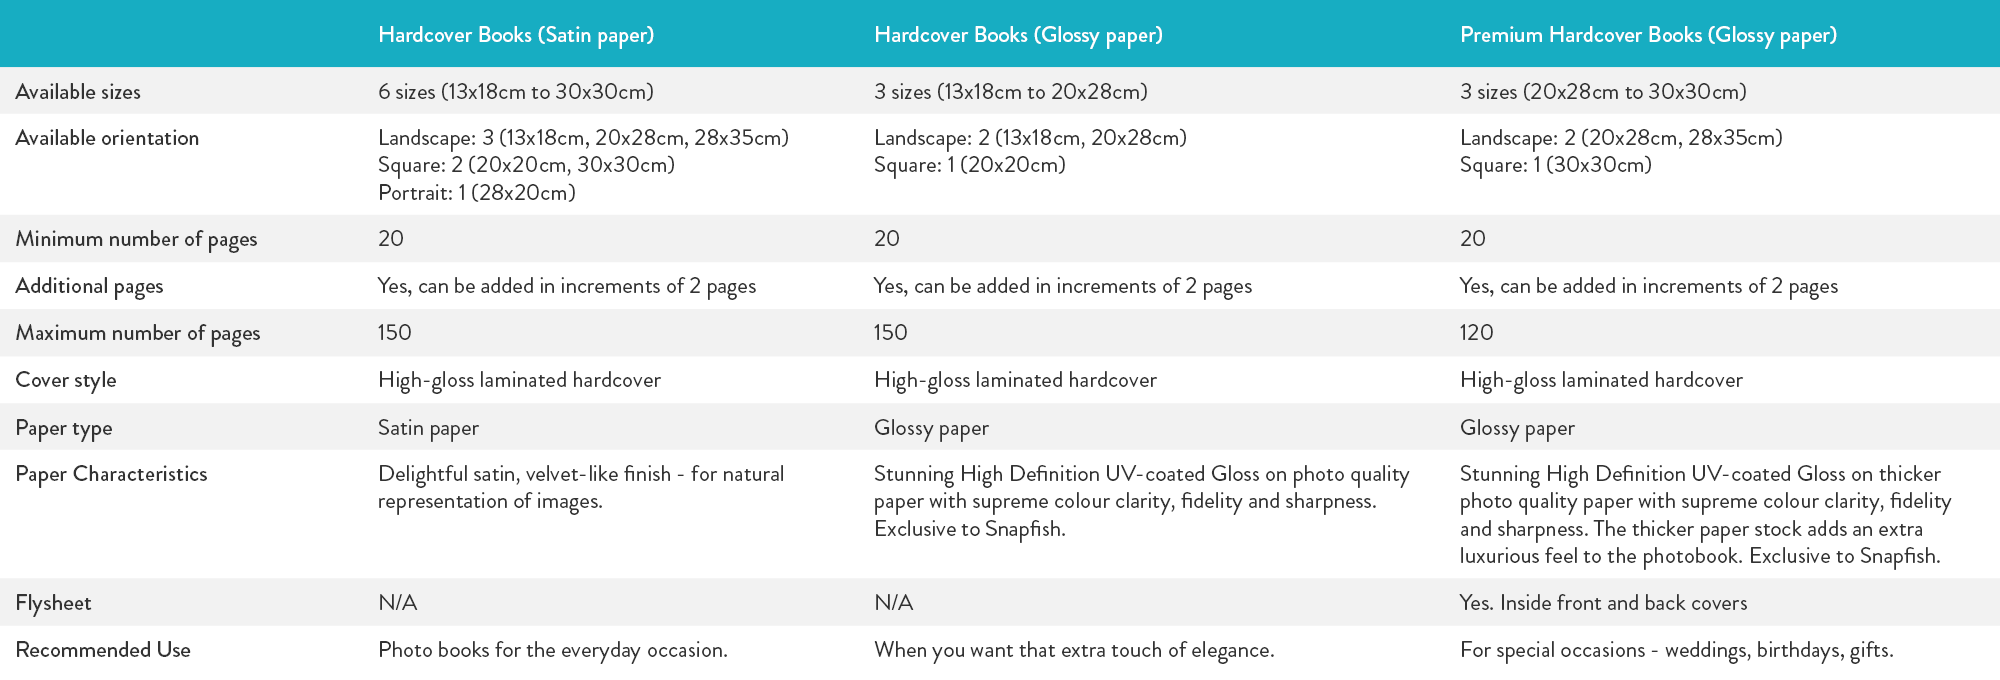 Photo book comparison table